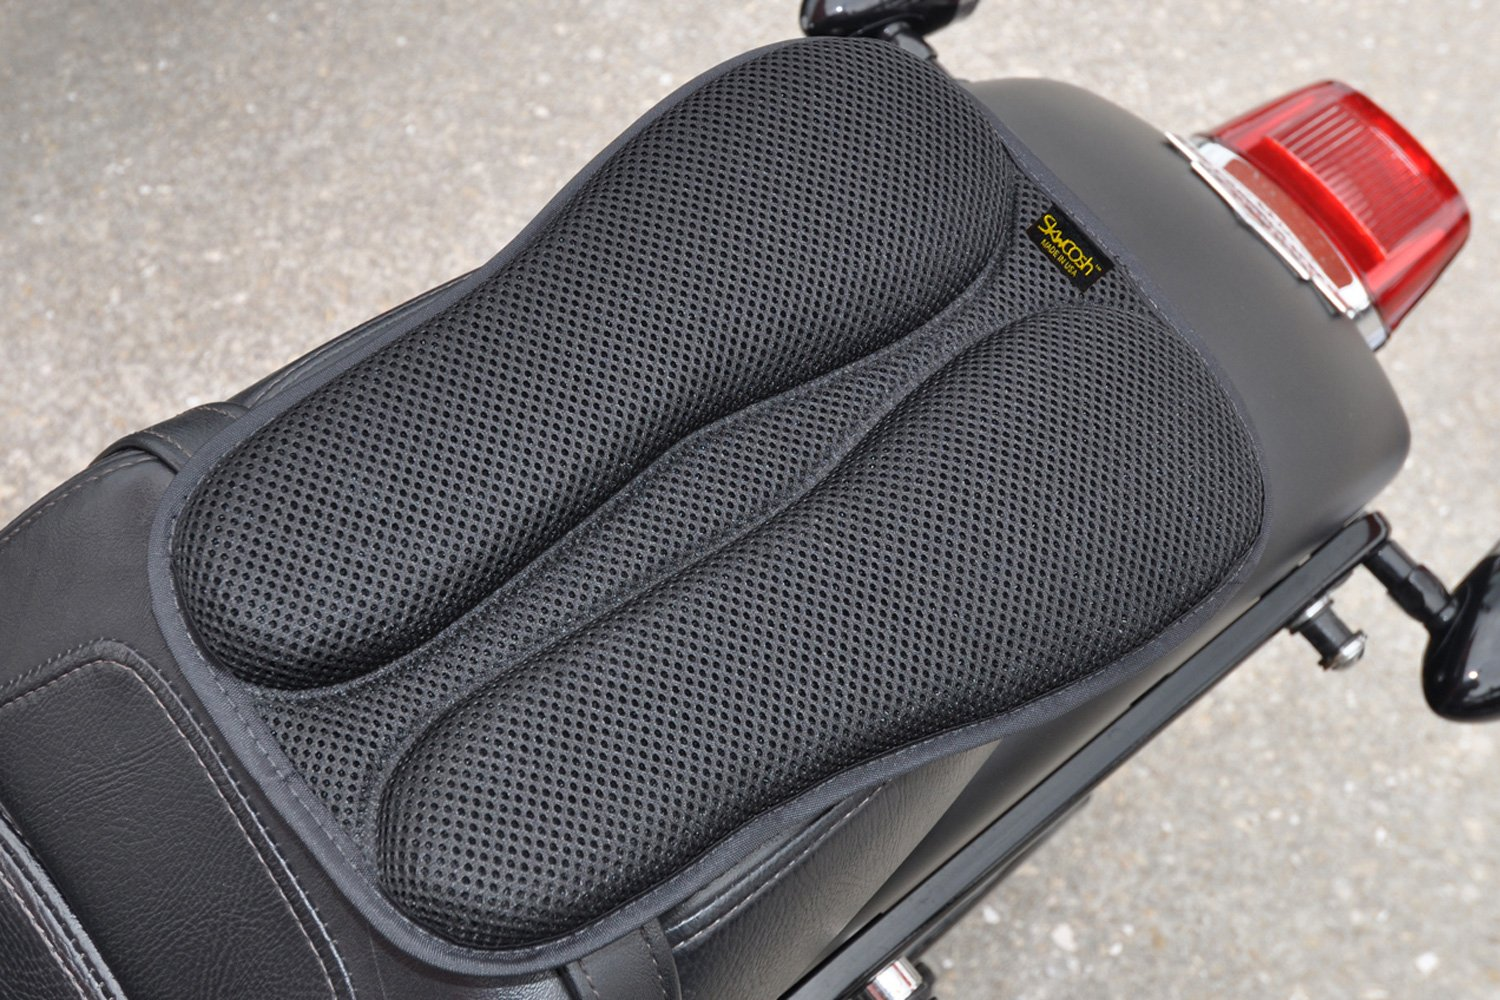 SKWOOSH Passenger Pillion IV Motorcycle Gel Rear Seat Pad with Breathable Cooling Mesh Fabric | Made in USA